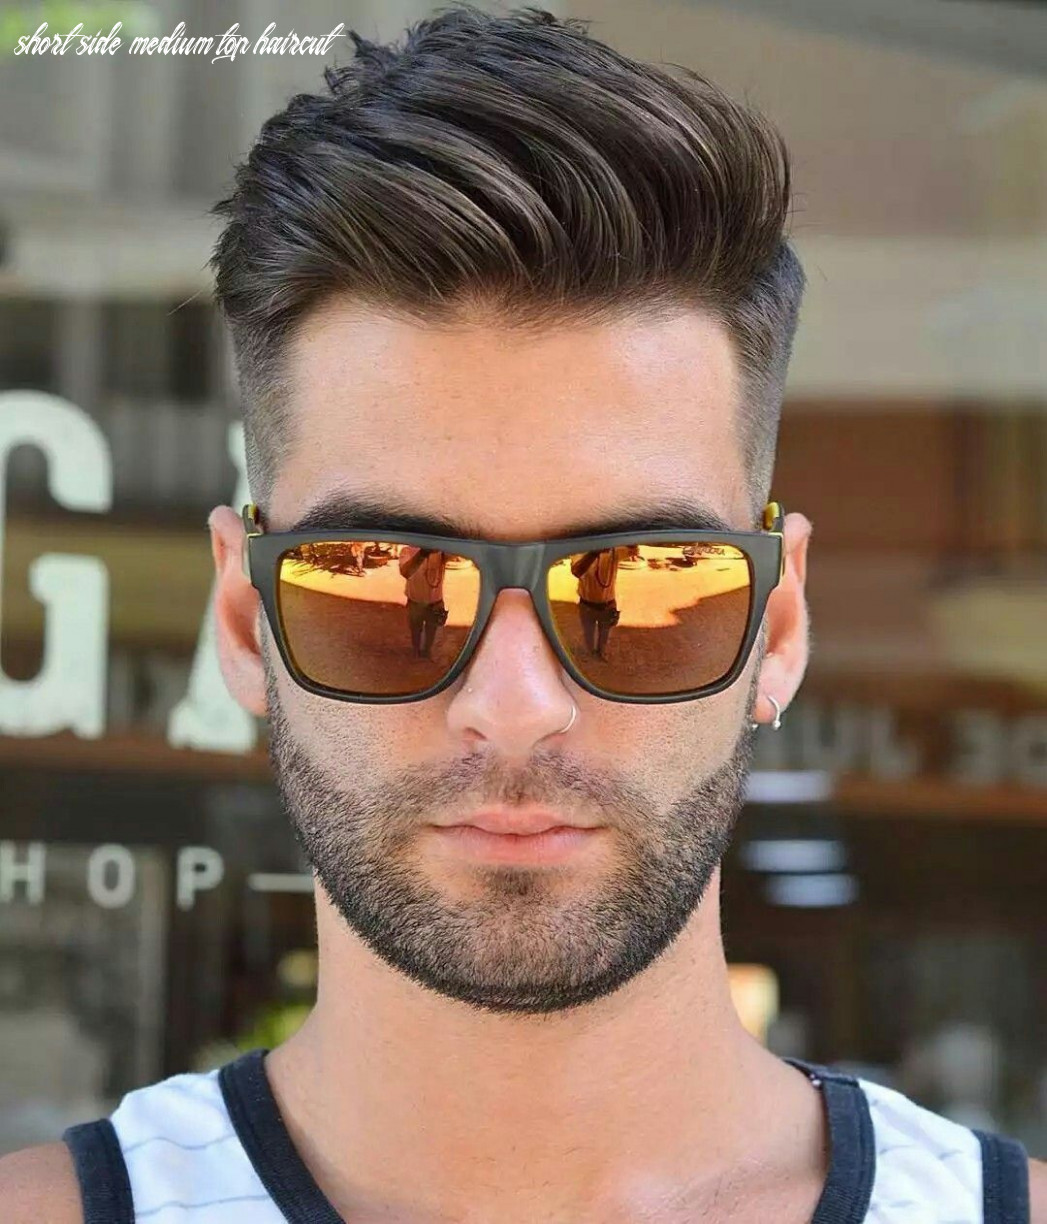 Short sides medium top | mens hairstyles, mens haircuts short